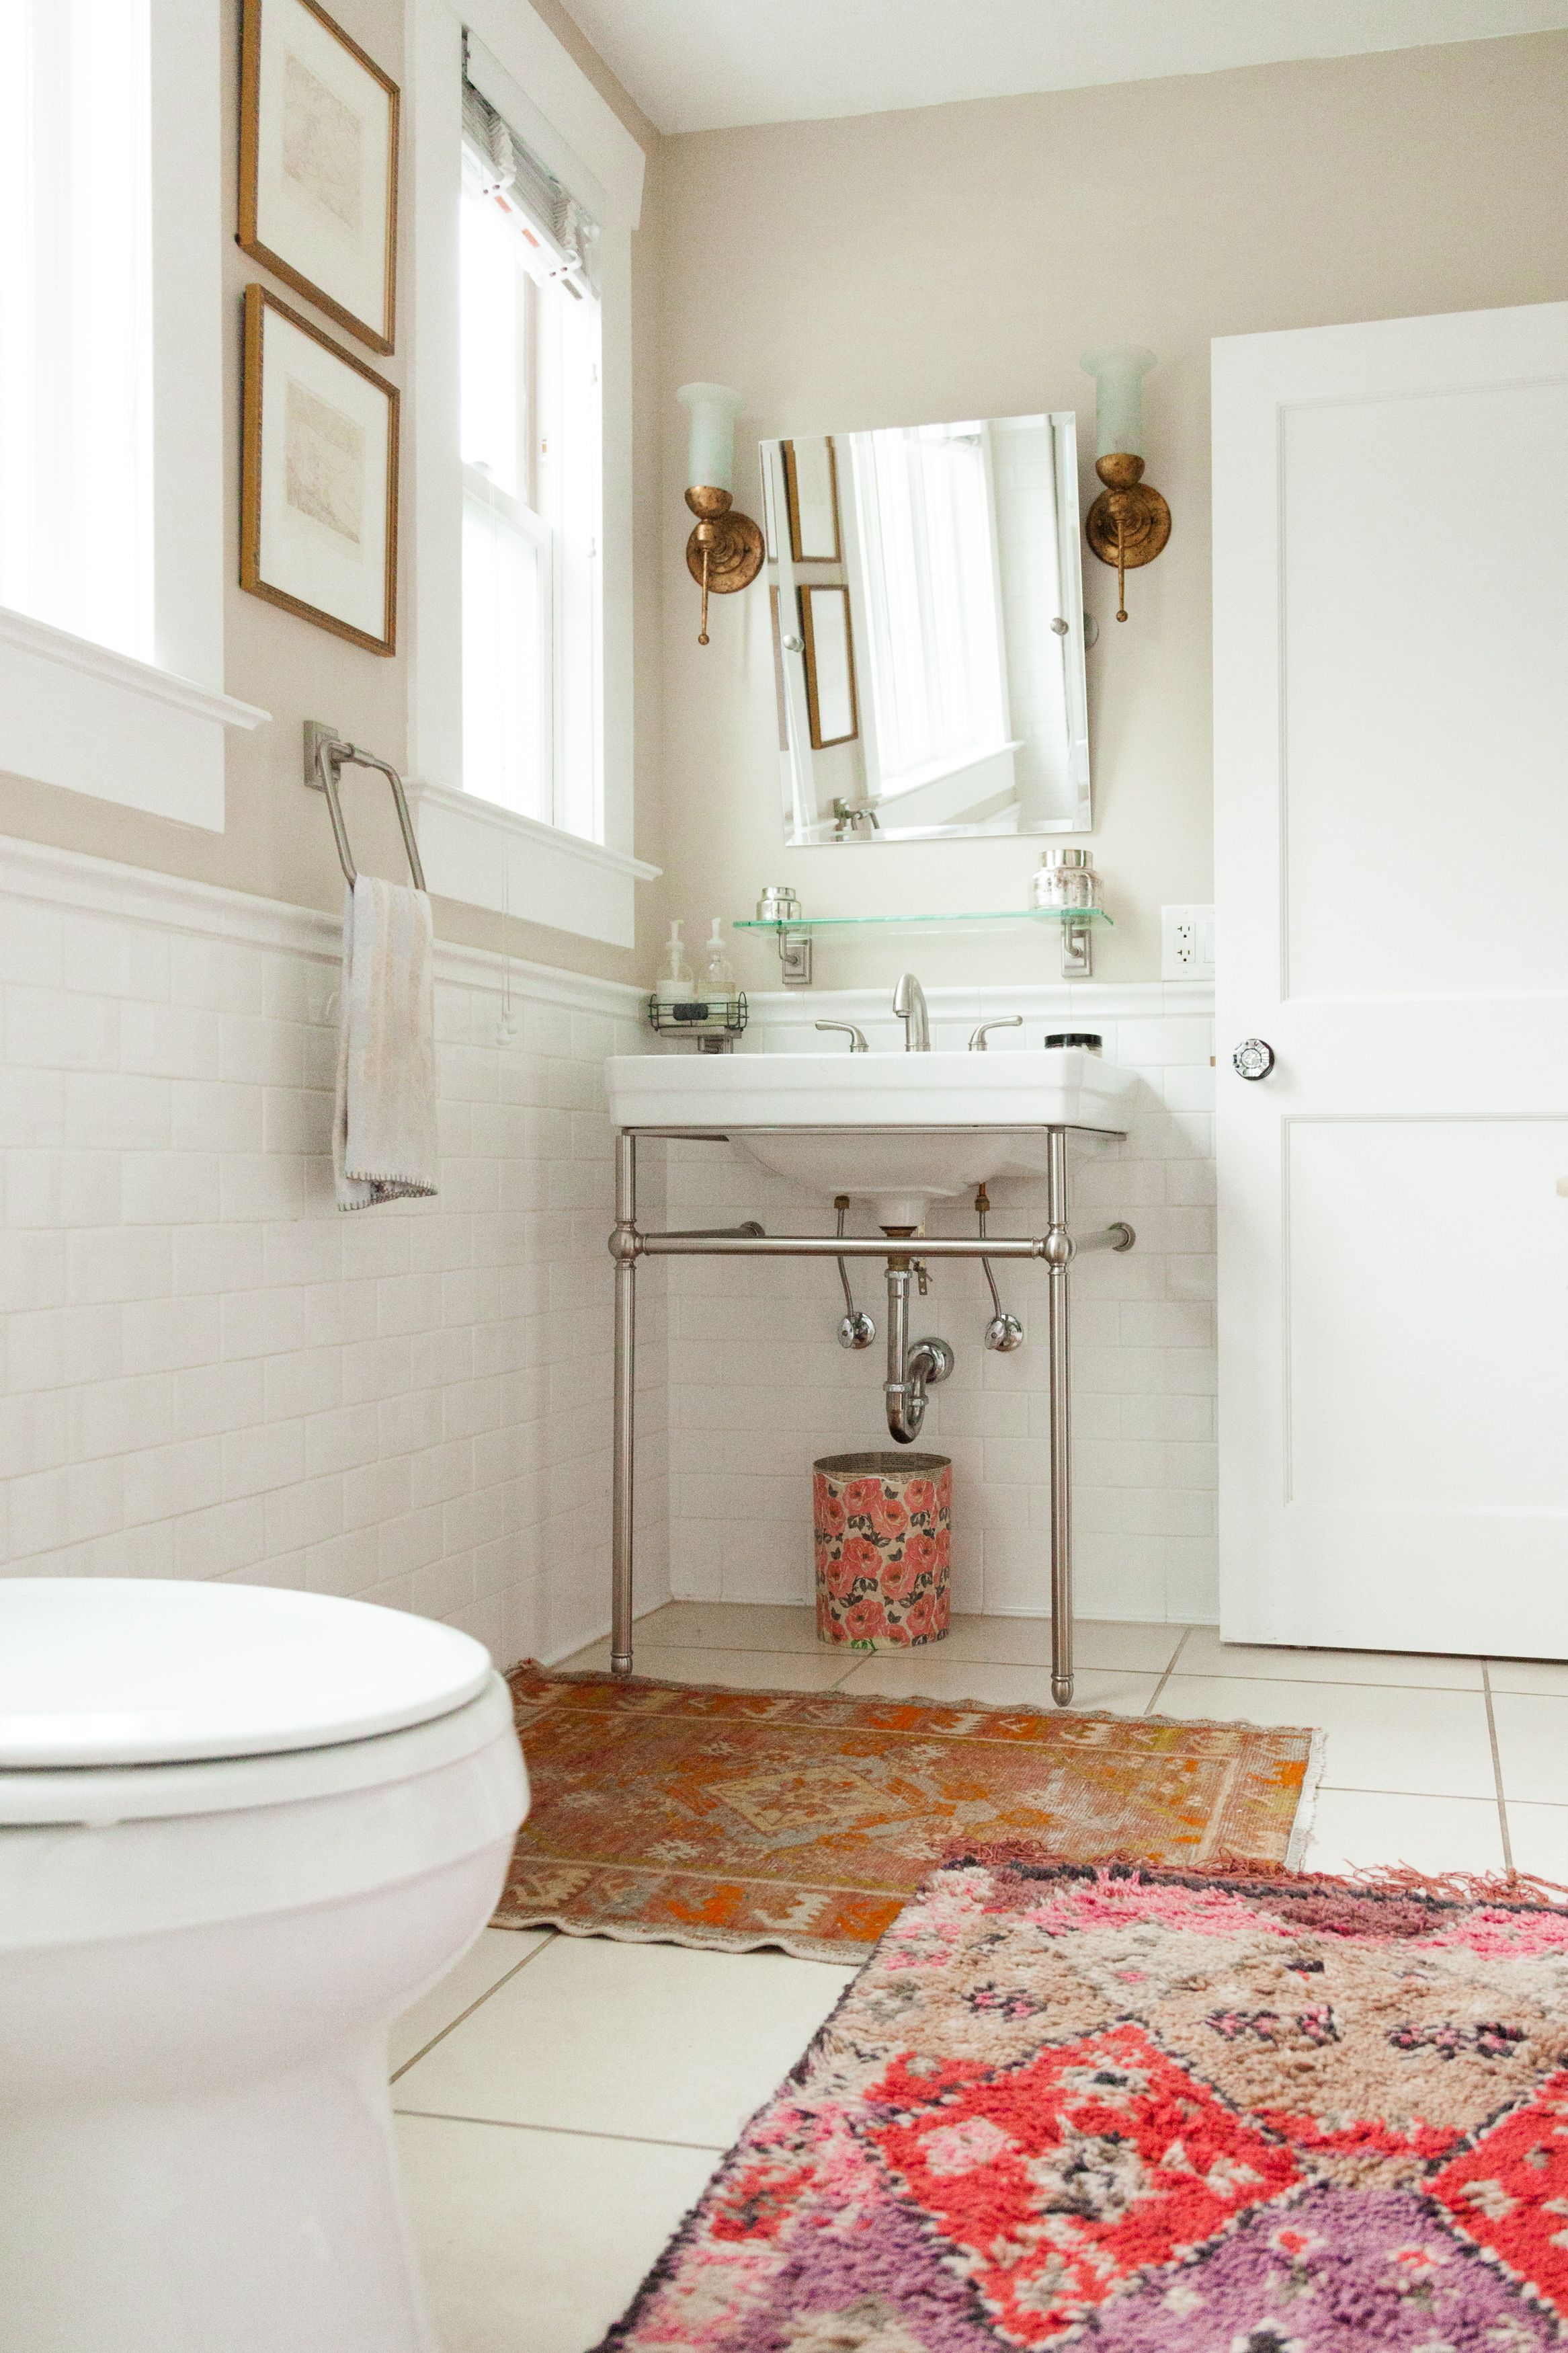 The Decor Trick That Overhauled How I Feel About My Bathroom | Wall ...